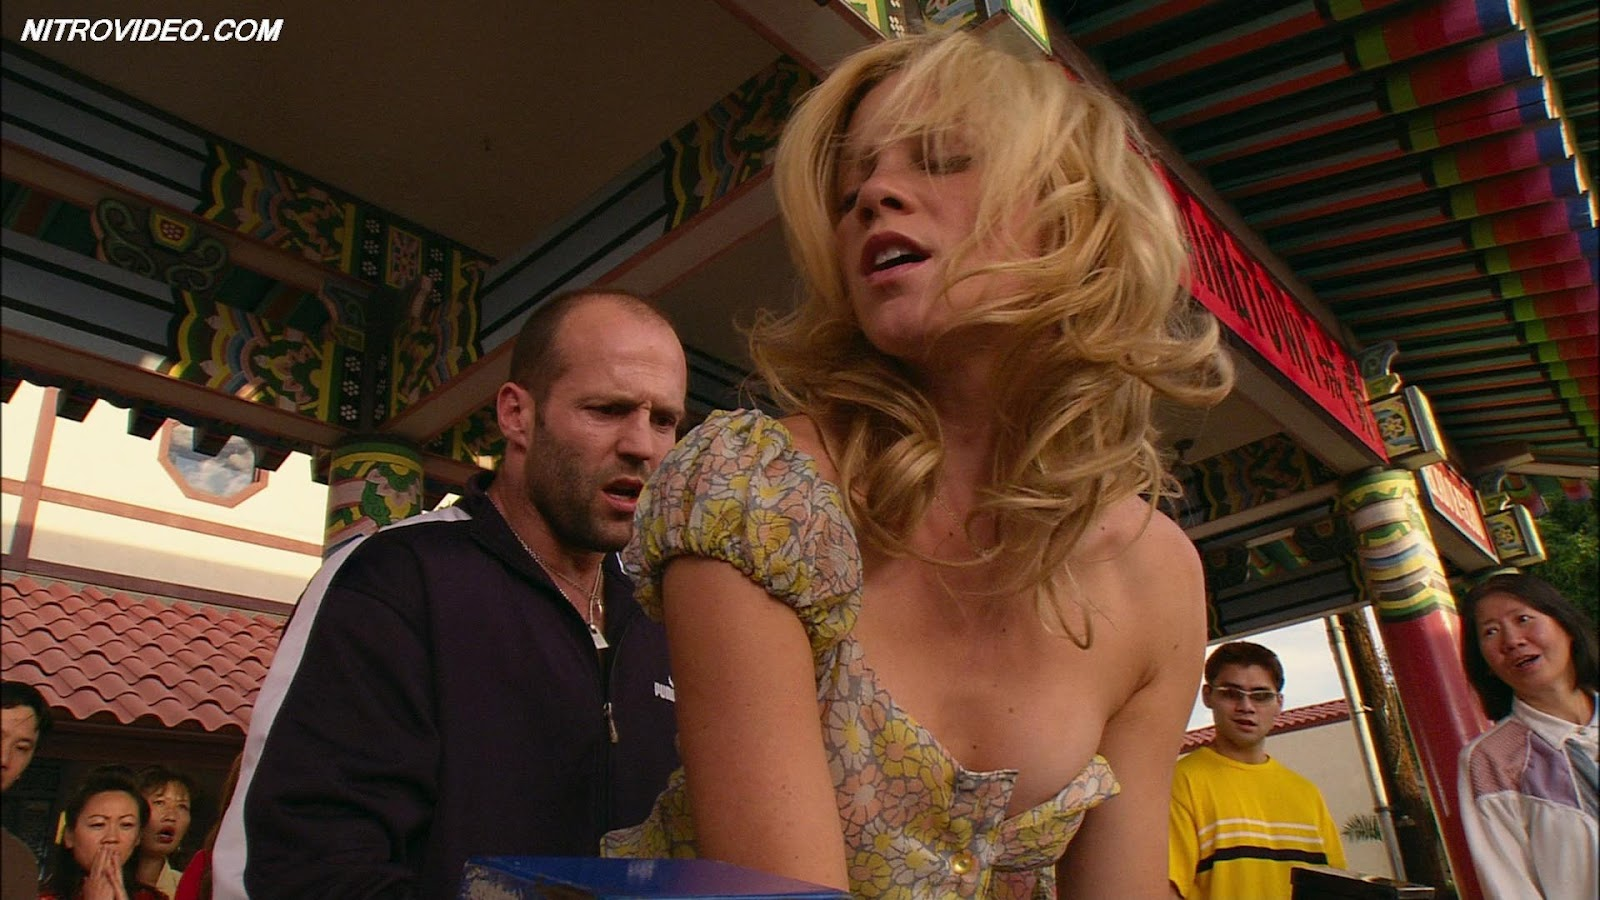 Jason statham and amy smart sex scene